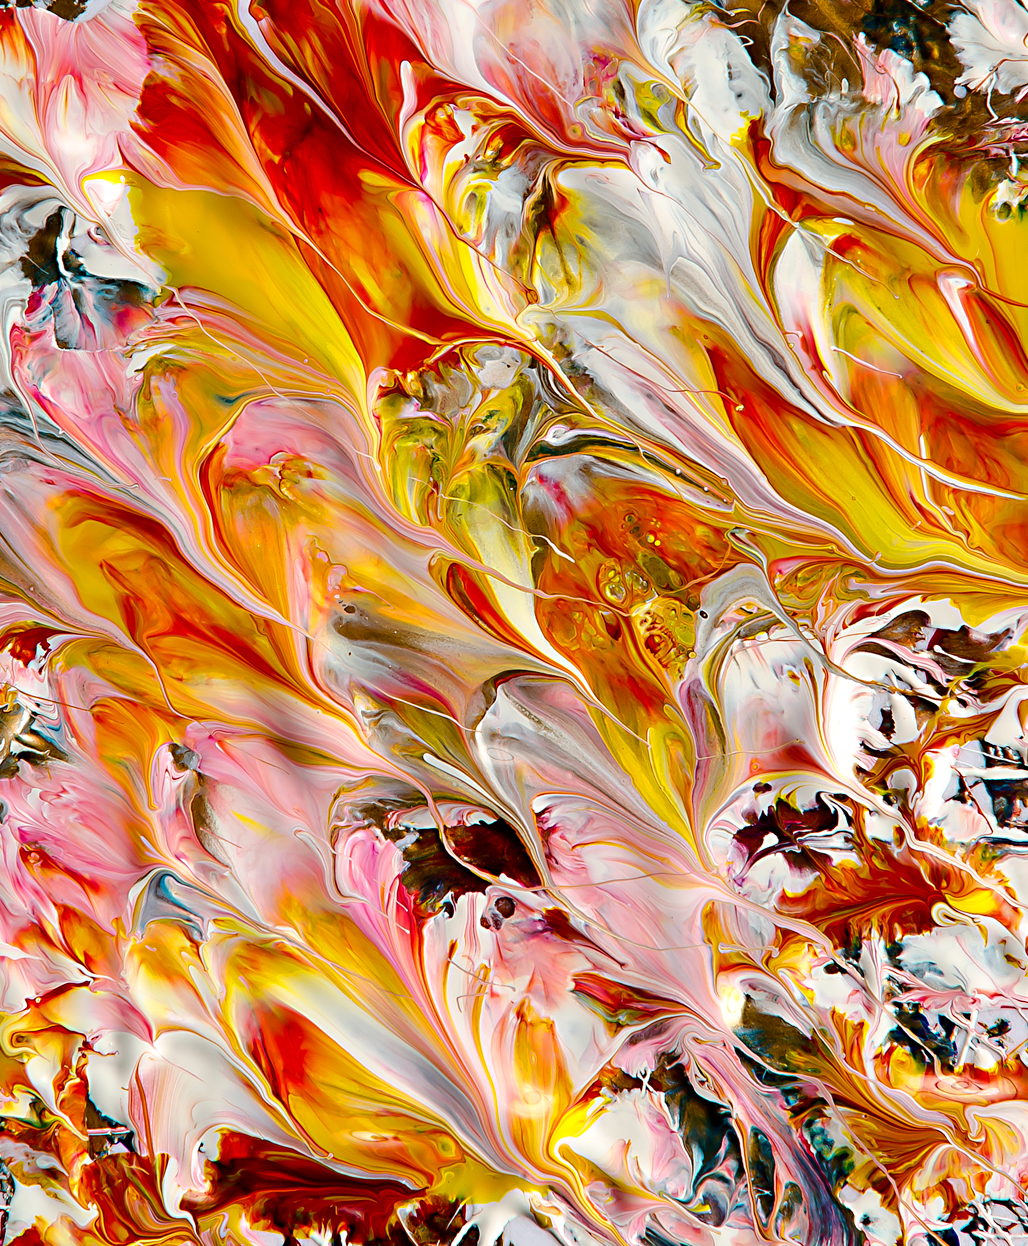 Abstract works of art by Mark Lovejoy